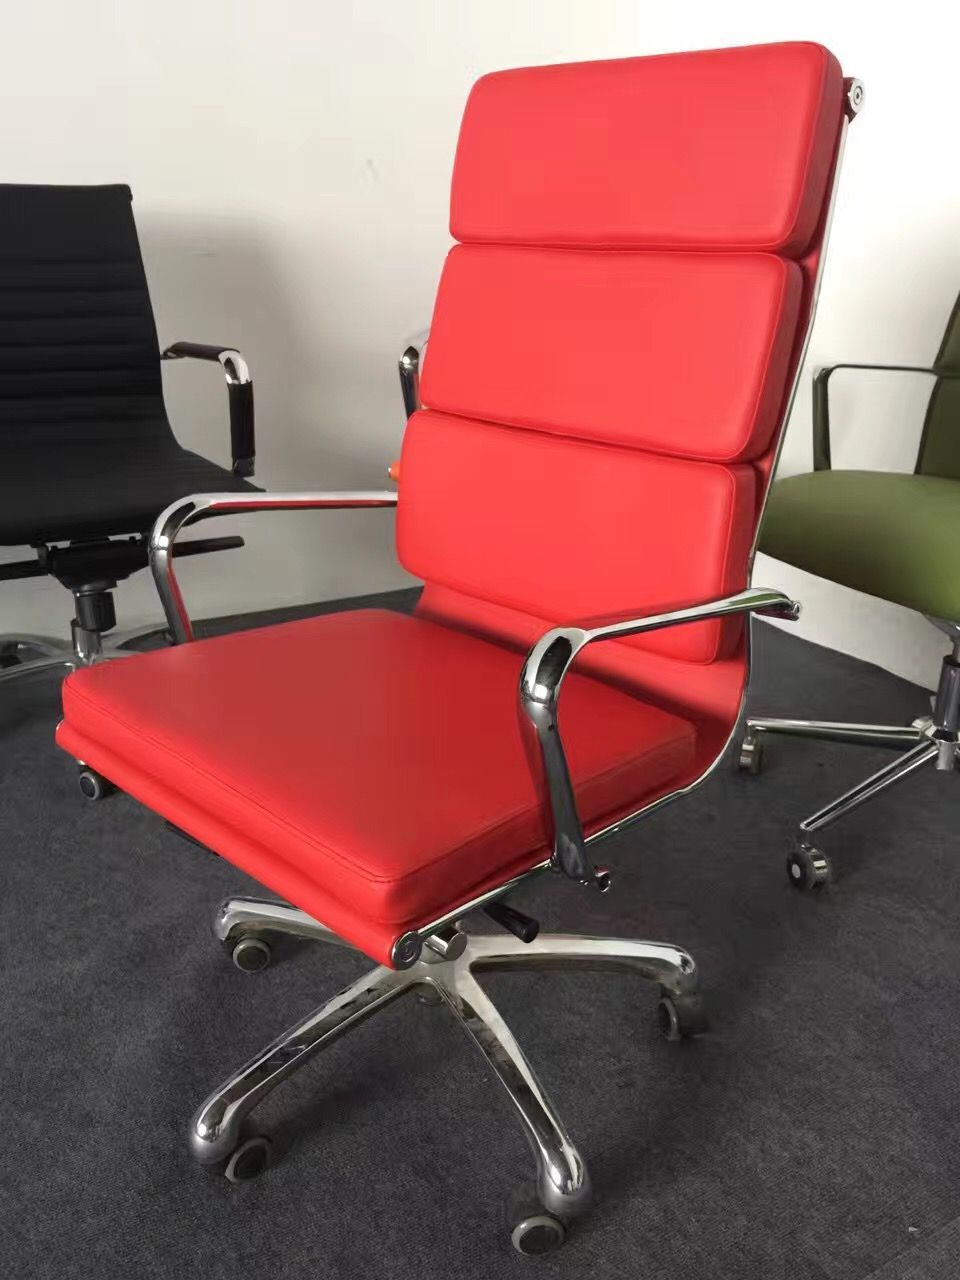 Modern Red Eames Office Chair Reclining Red Office Chair Ergonomic Red Eames Mesh Chair Office Chair Cheap Office Chairs Eames Office Chair